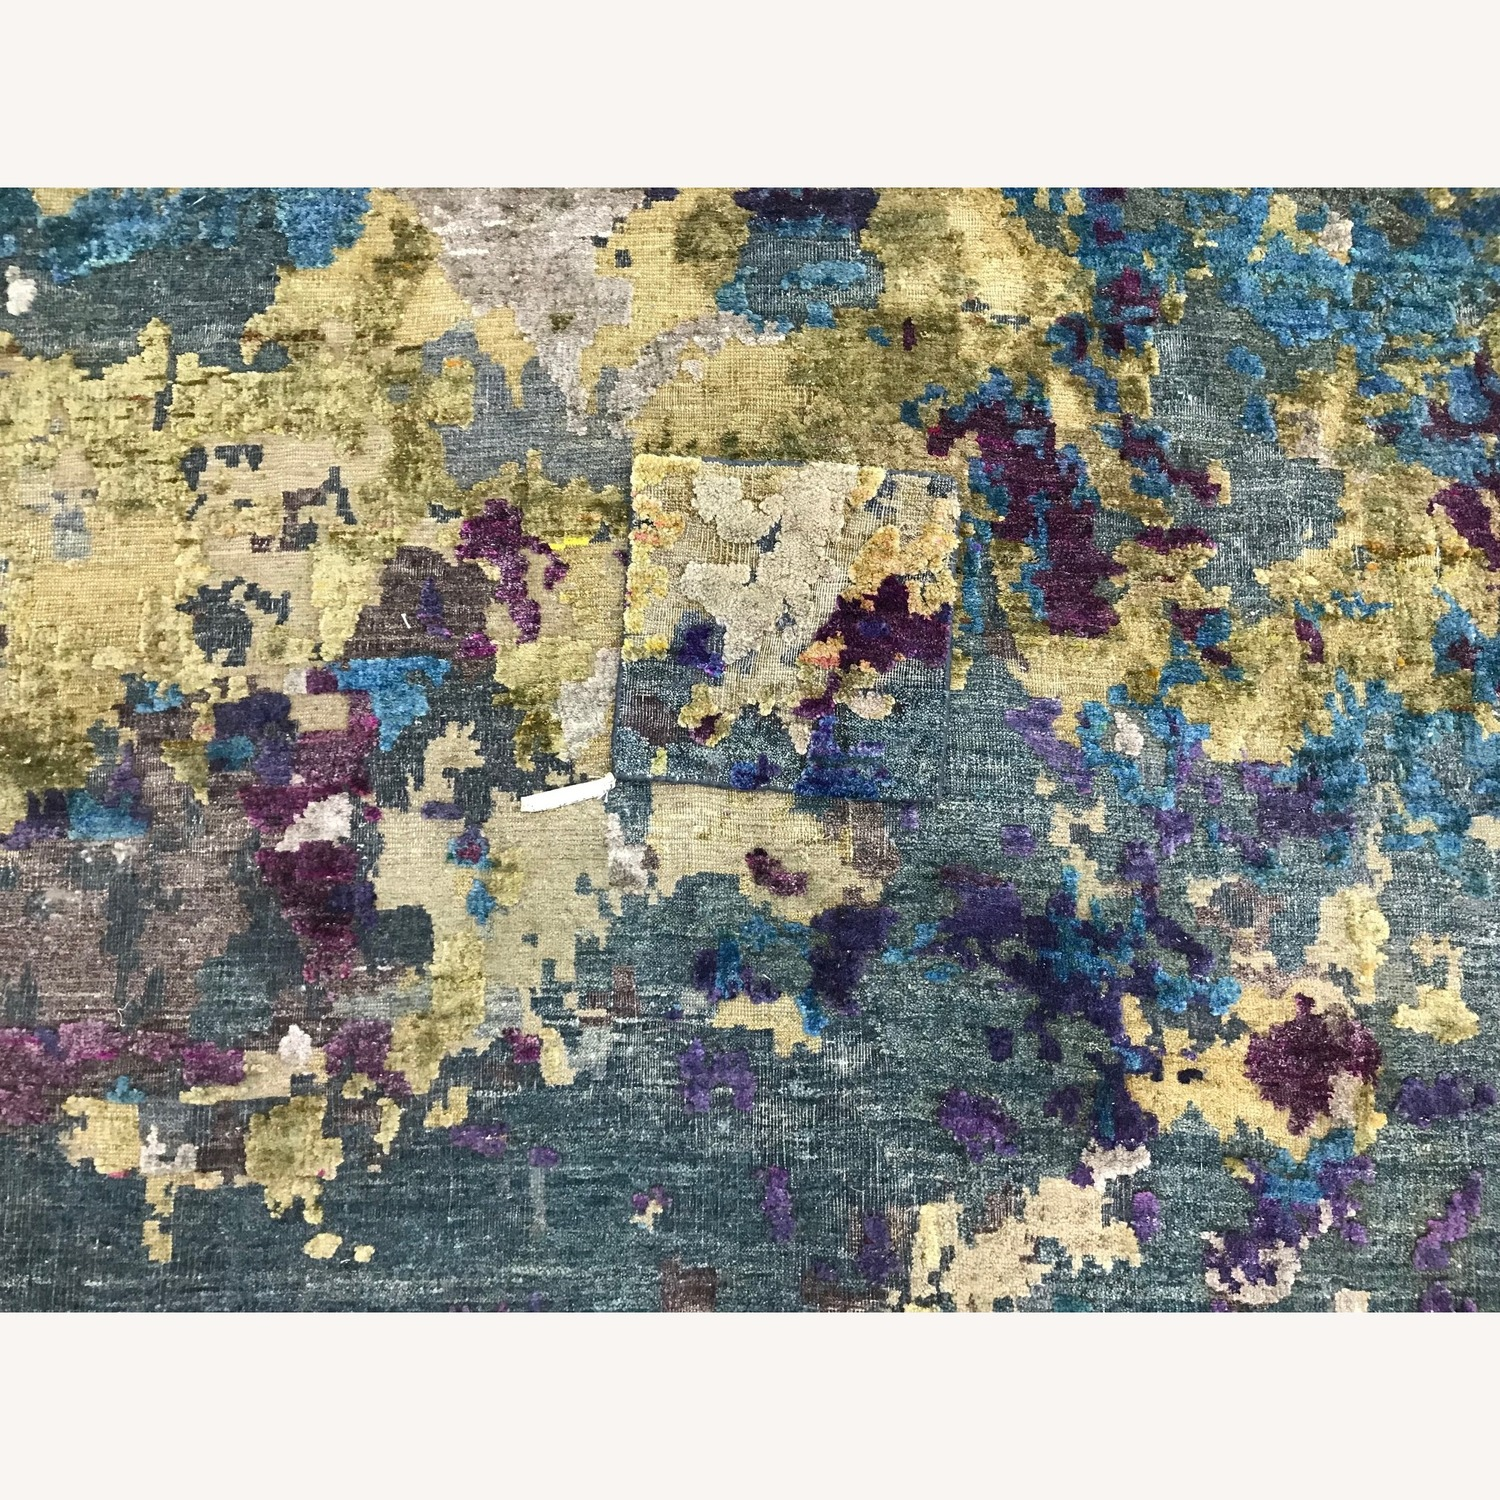 Hand-Knotted Wool & Silk Abstract Organic Woven Rug - image-5